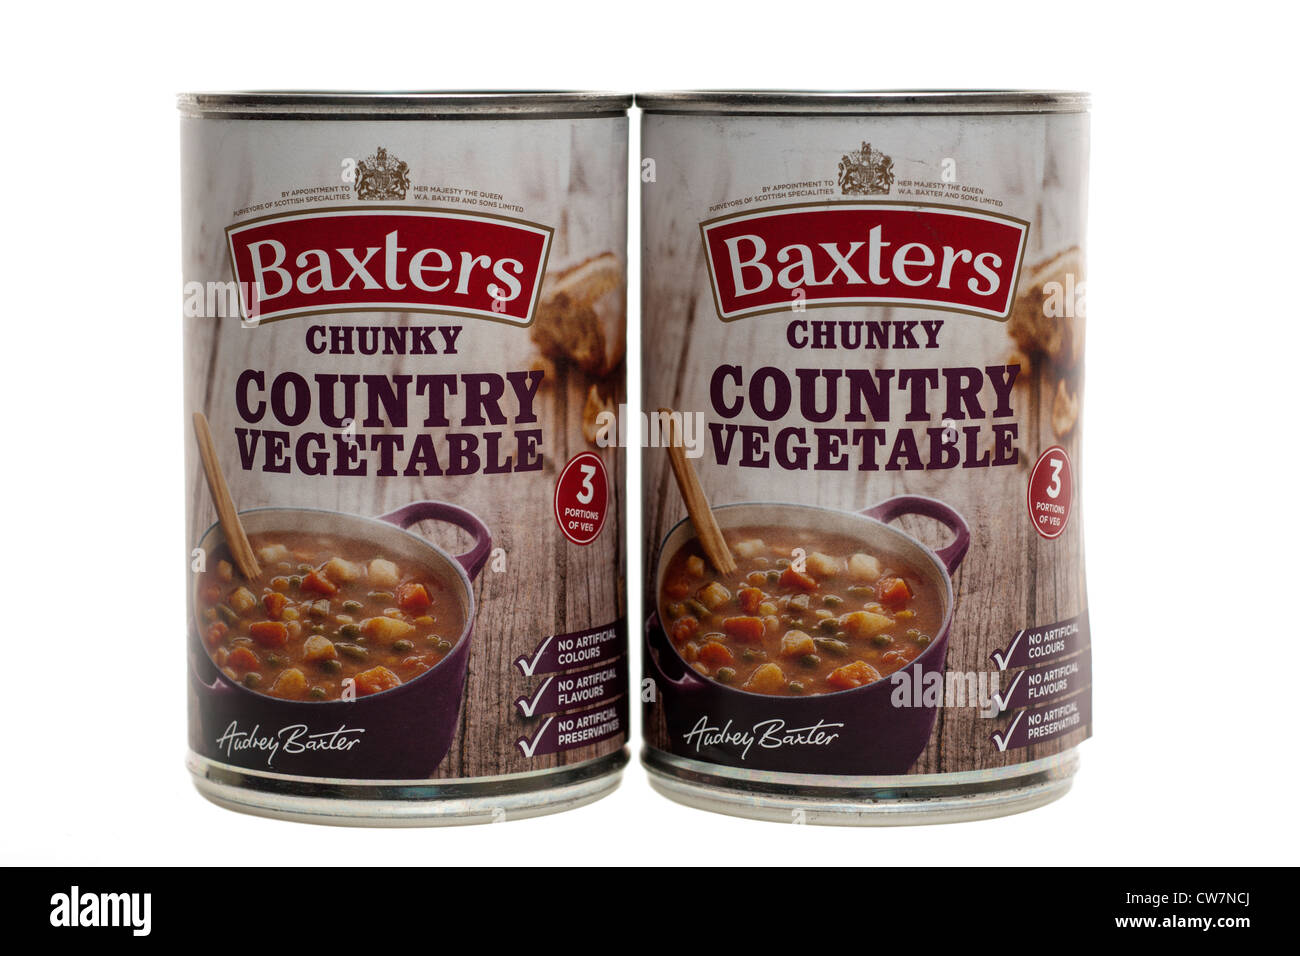 Two tins of Baxters chunky Country Vegetable soup - Stock Image